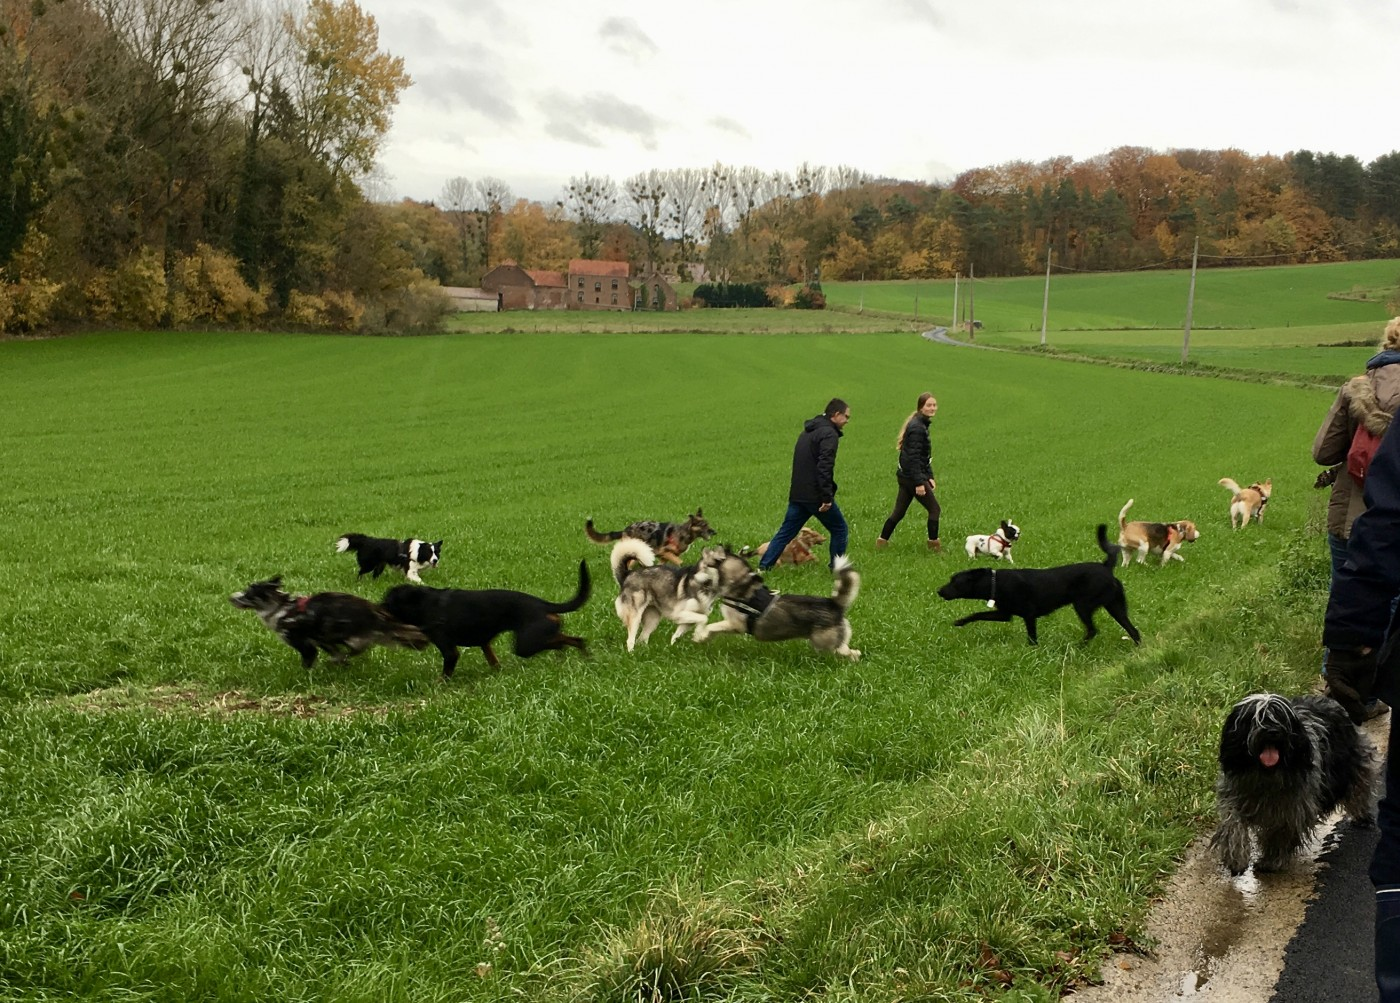 Husky, Schapendoes, Beagle, Border, Bouledogue français